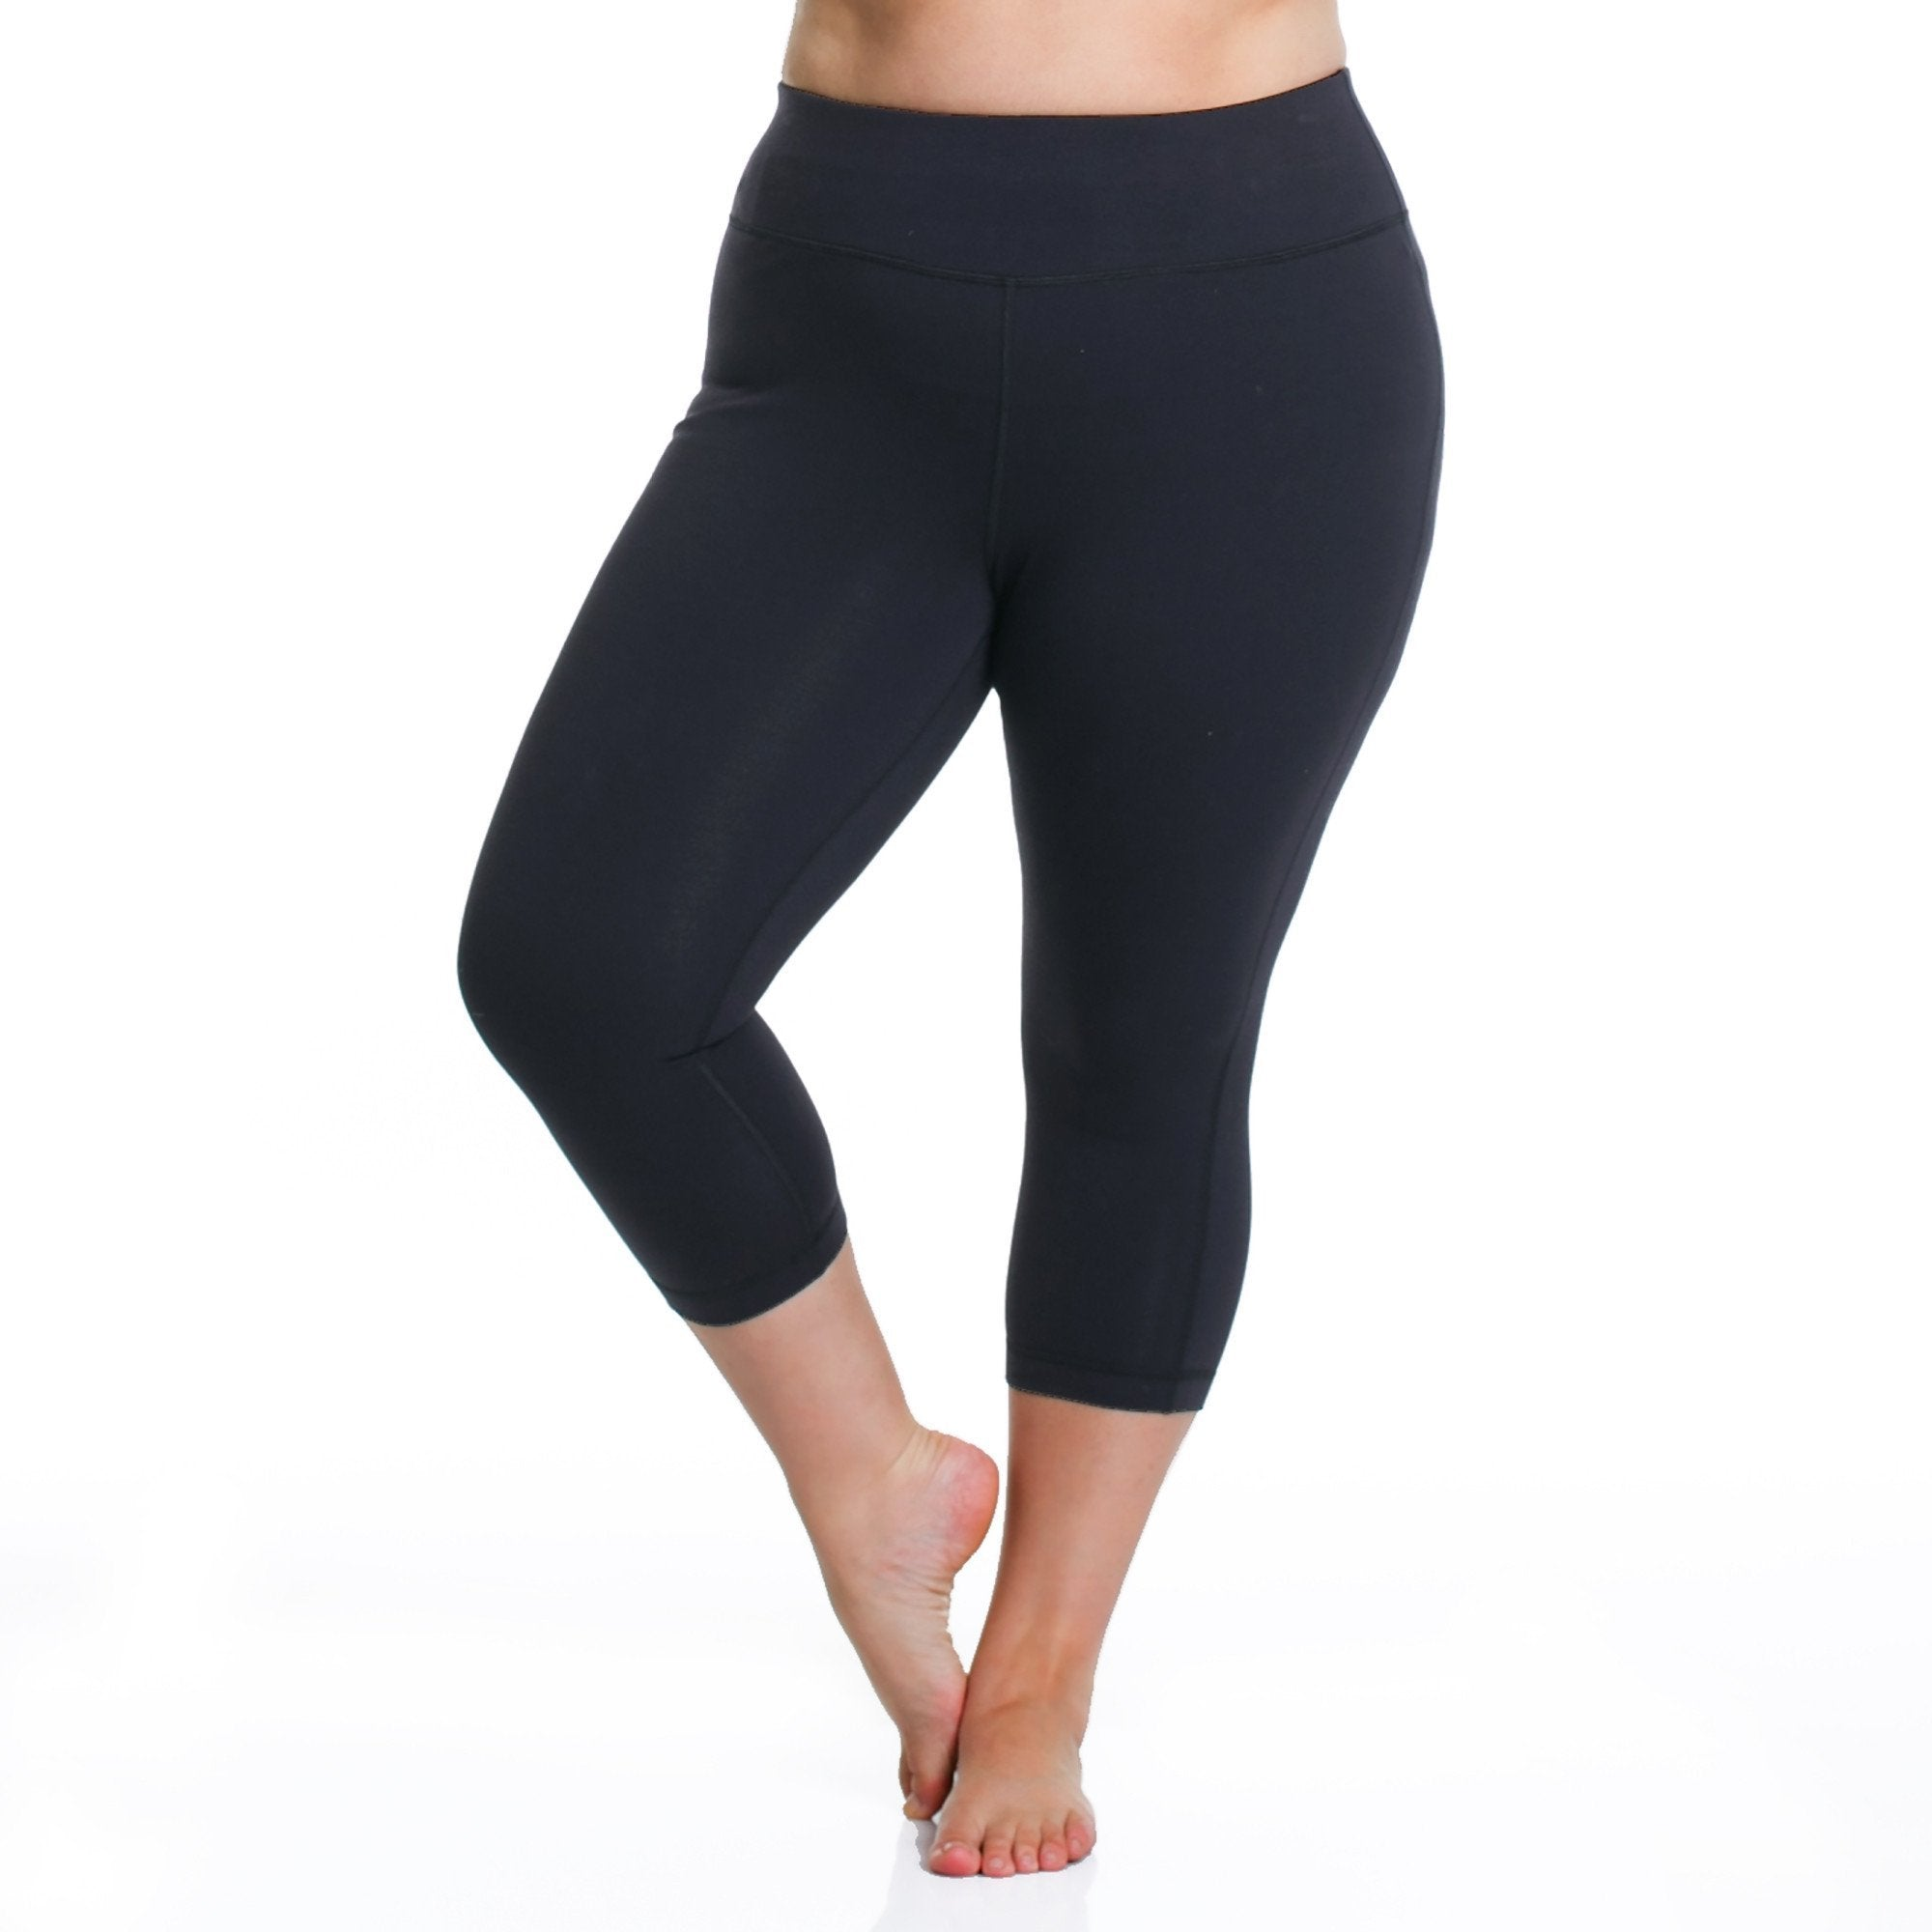 Curve Basix Capri - Rainbeau Curves, 14/16 / Black, activewear, athleisure, fitness, workout, gym, performance, womens, ladies, plus size, curvy, full figured, spandex, cotton, polyester - 1